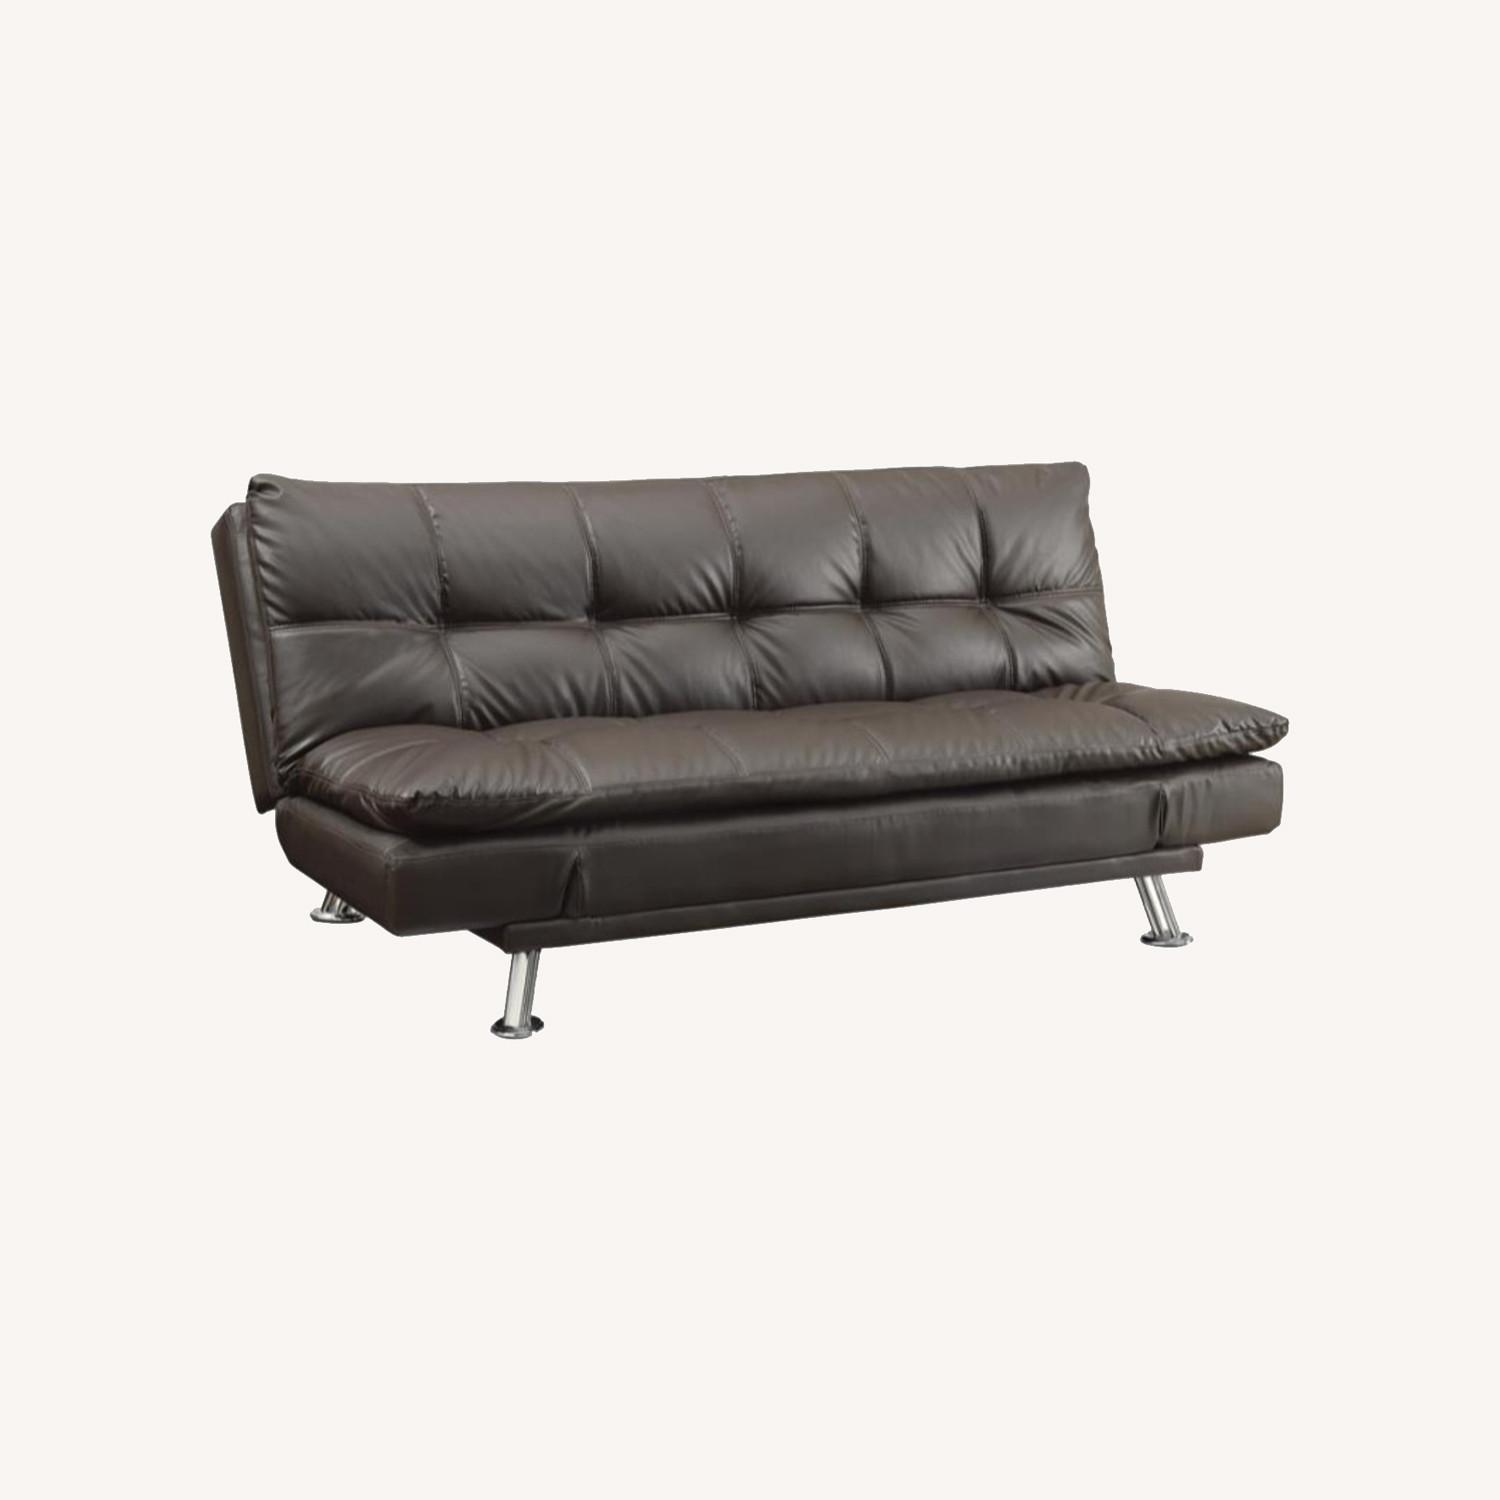 Sofa Bed In Brown Leatherette W/ Chrome Legs - image-5